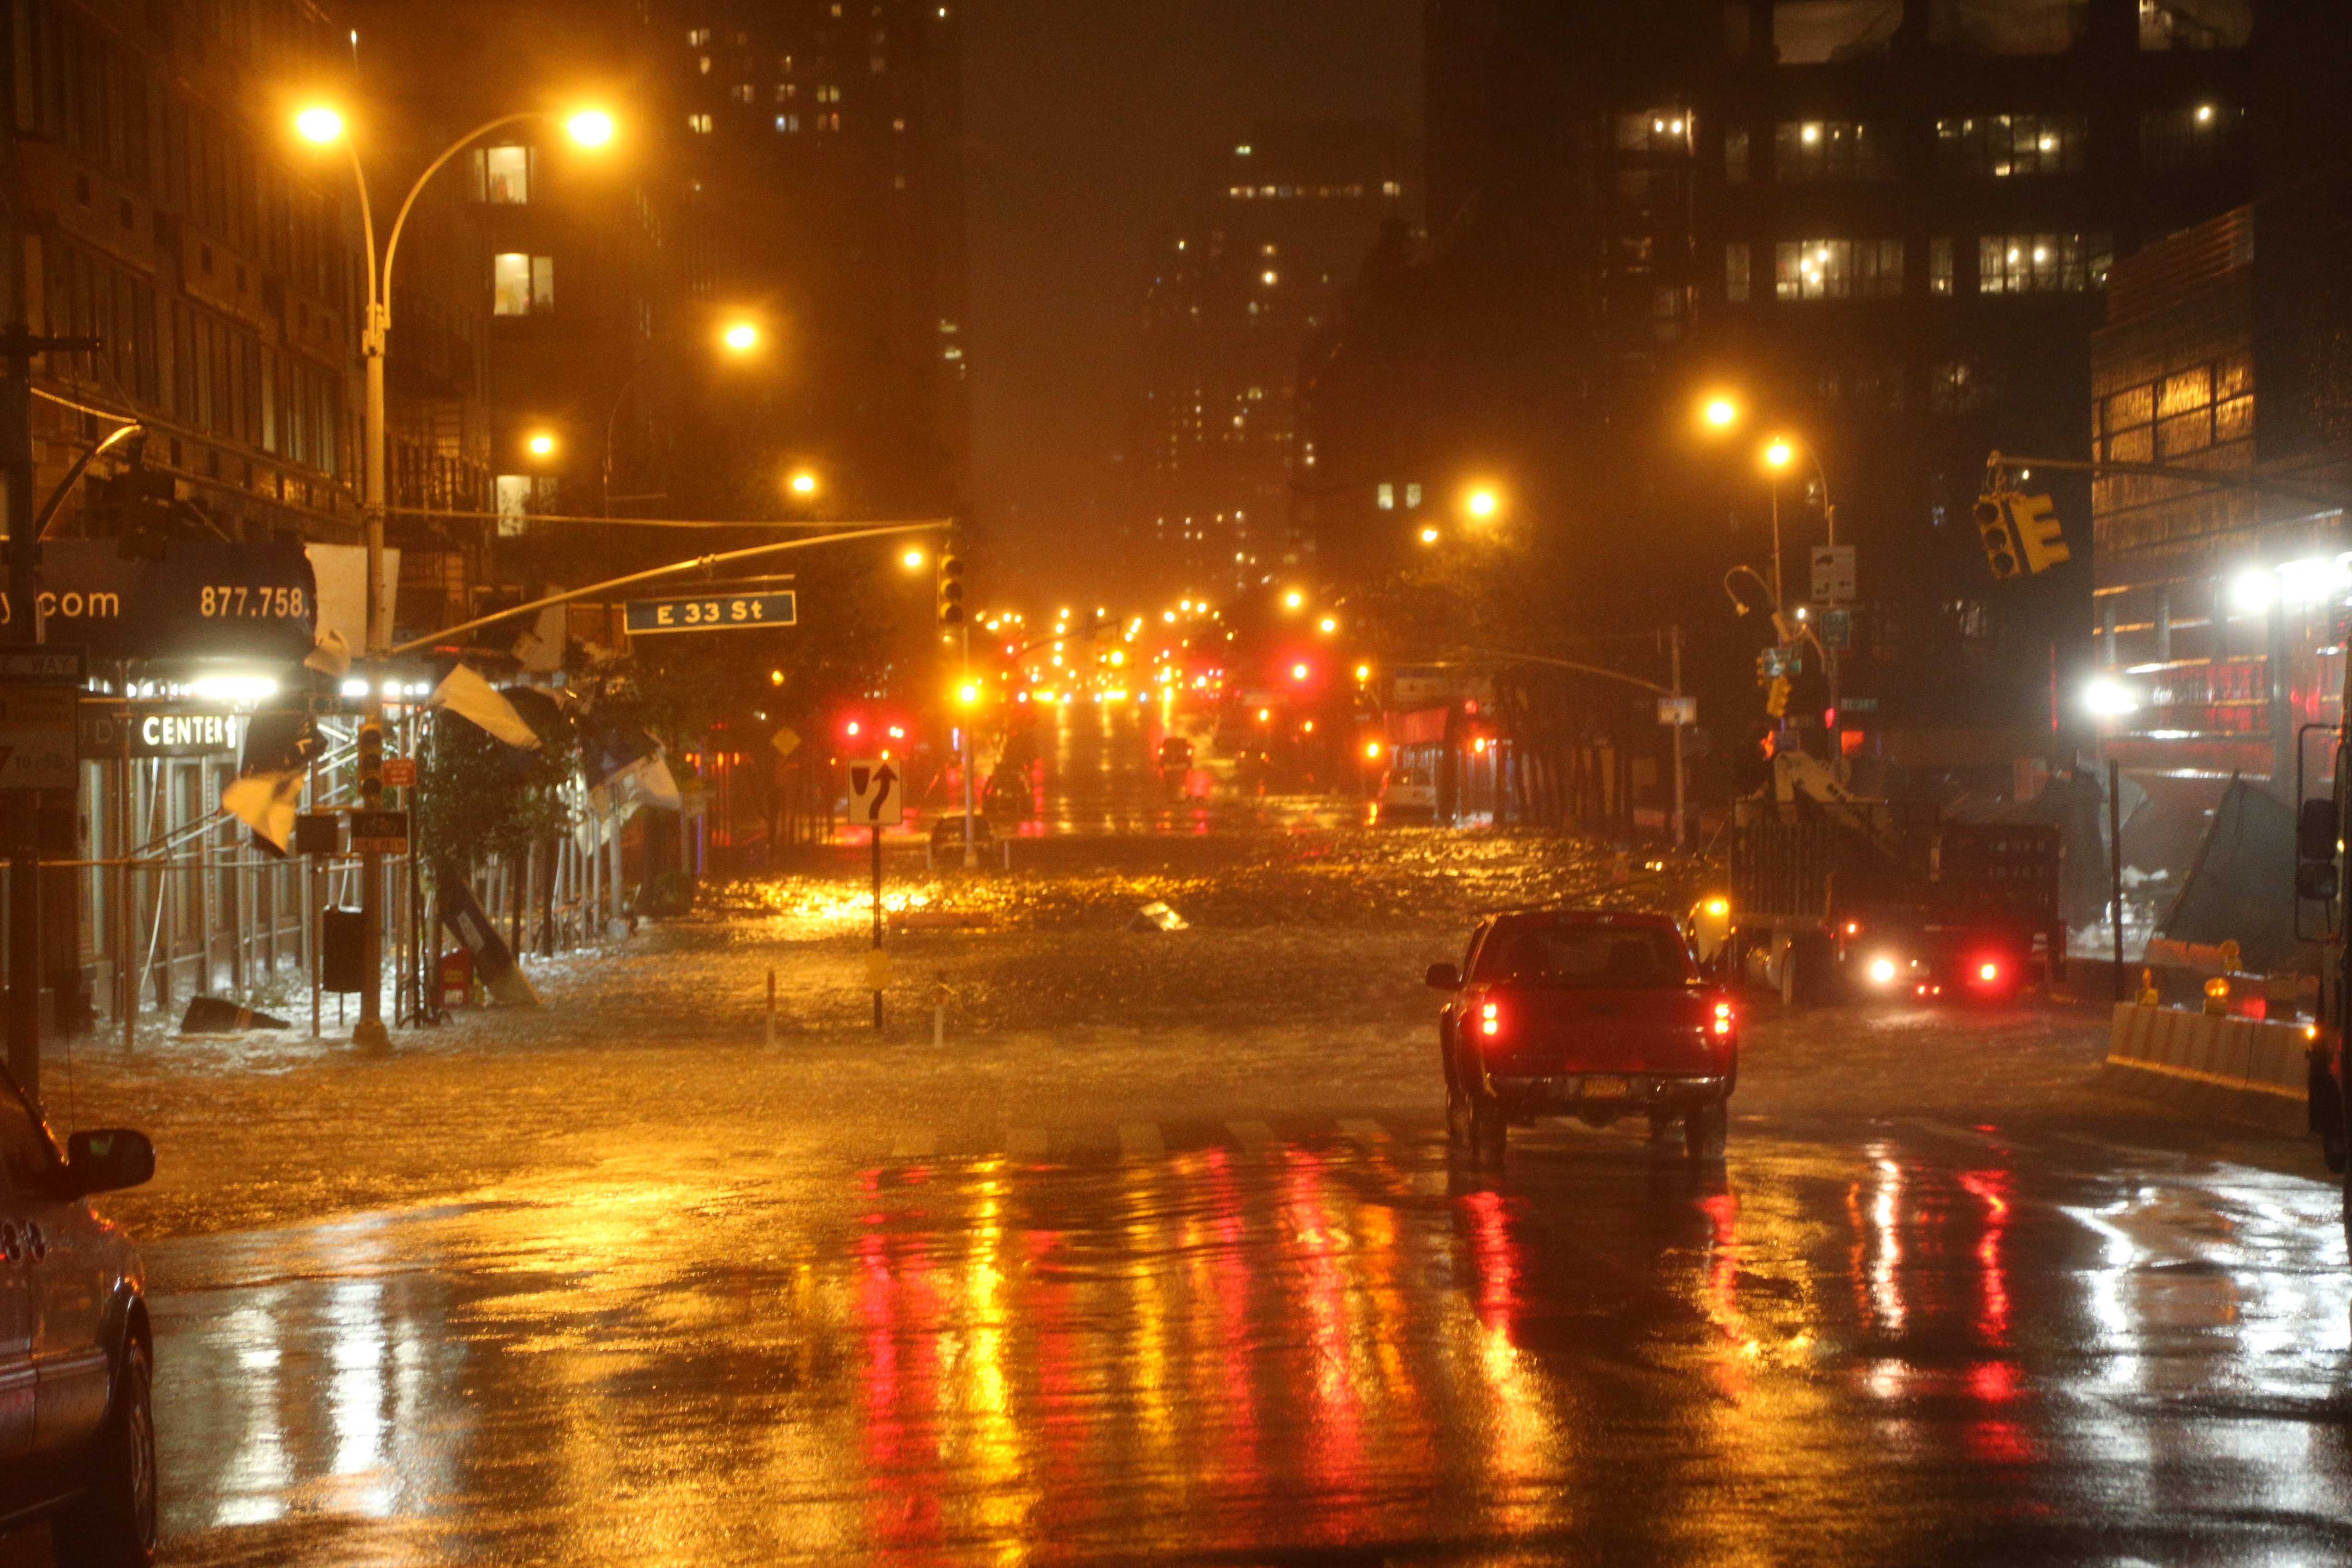 NYC hospital successfully evacuates 300 patients after